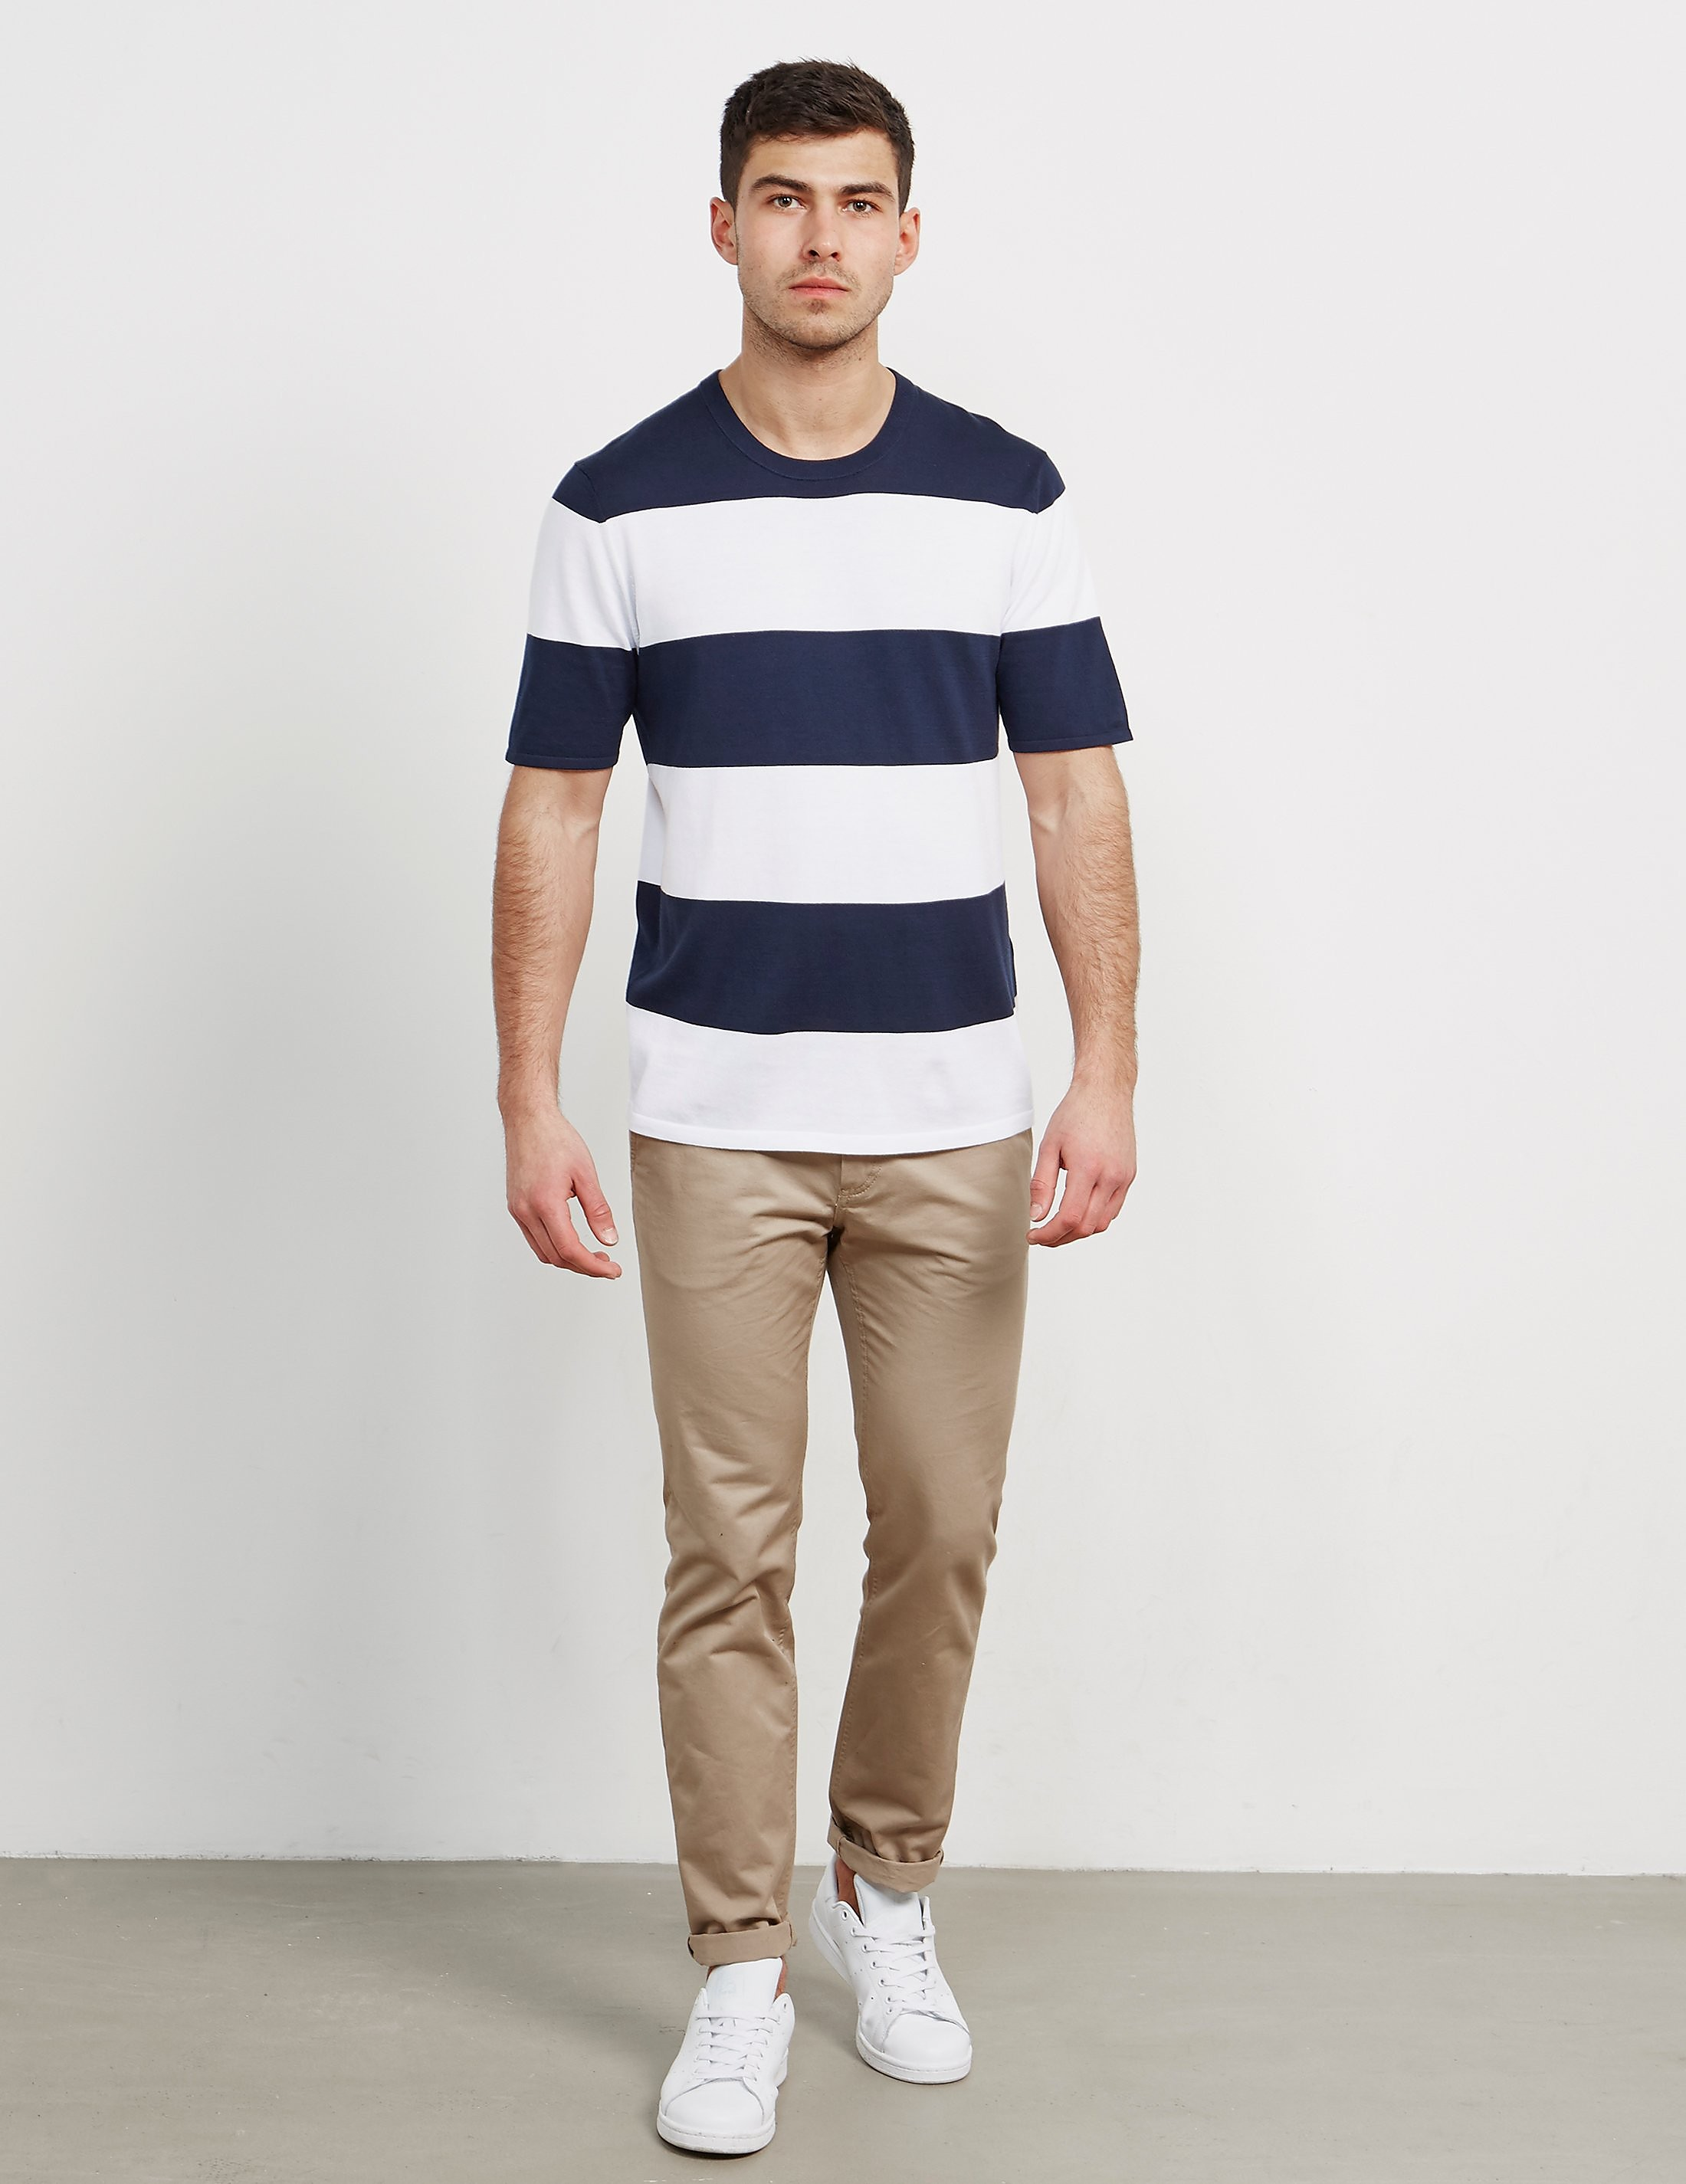 Michael Kors Stripe Knitted T-Shirt